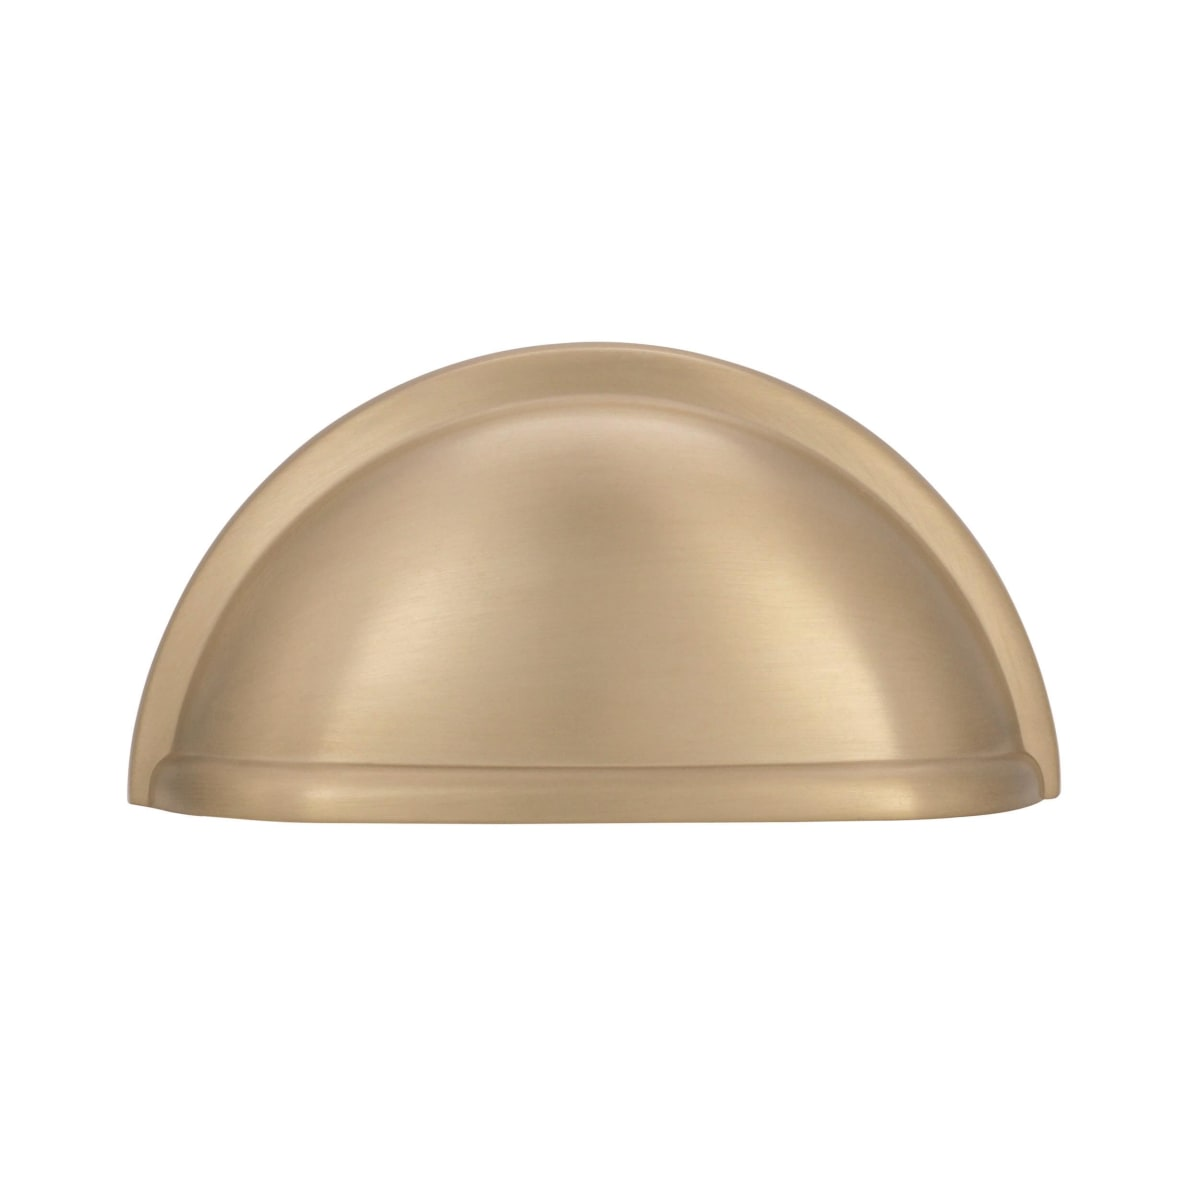 25 Amerock Cup Pull Oil Rubbed Bronze BP53010-ORB